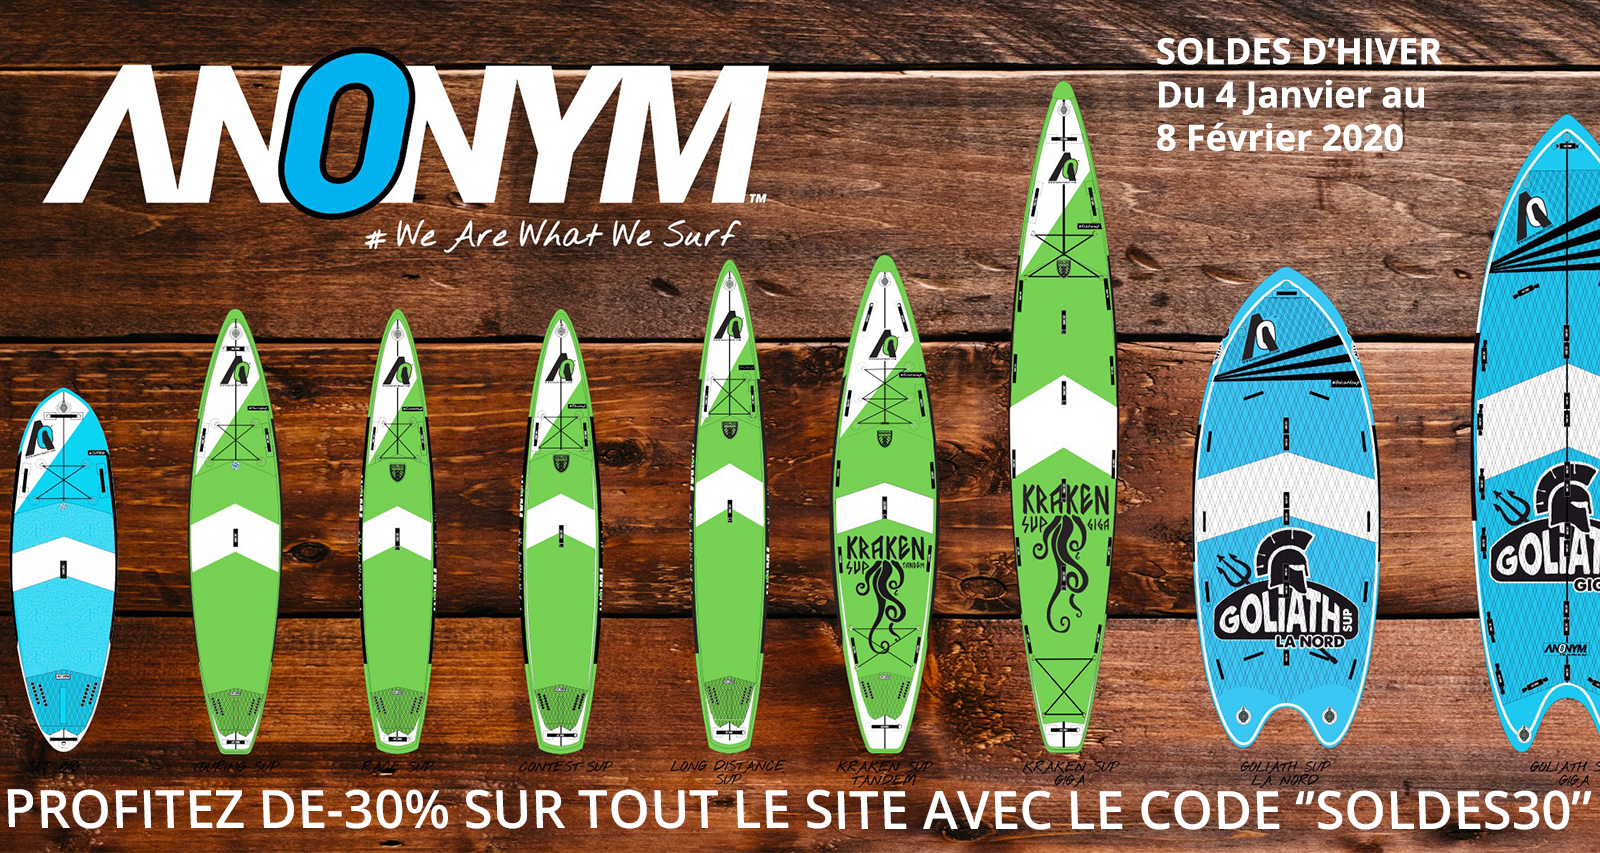 paddle-gonflable-pas-cher-soldes-hiver-anonym-sup